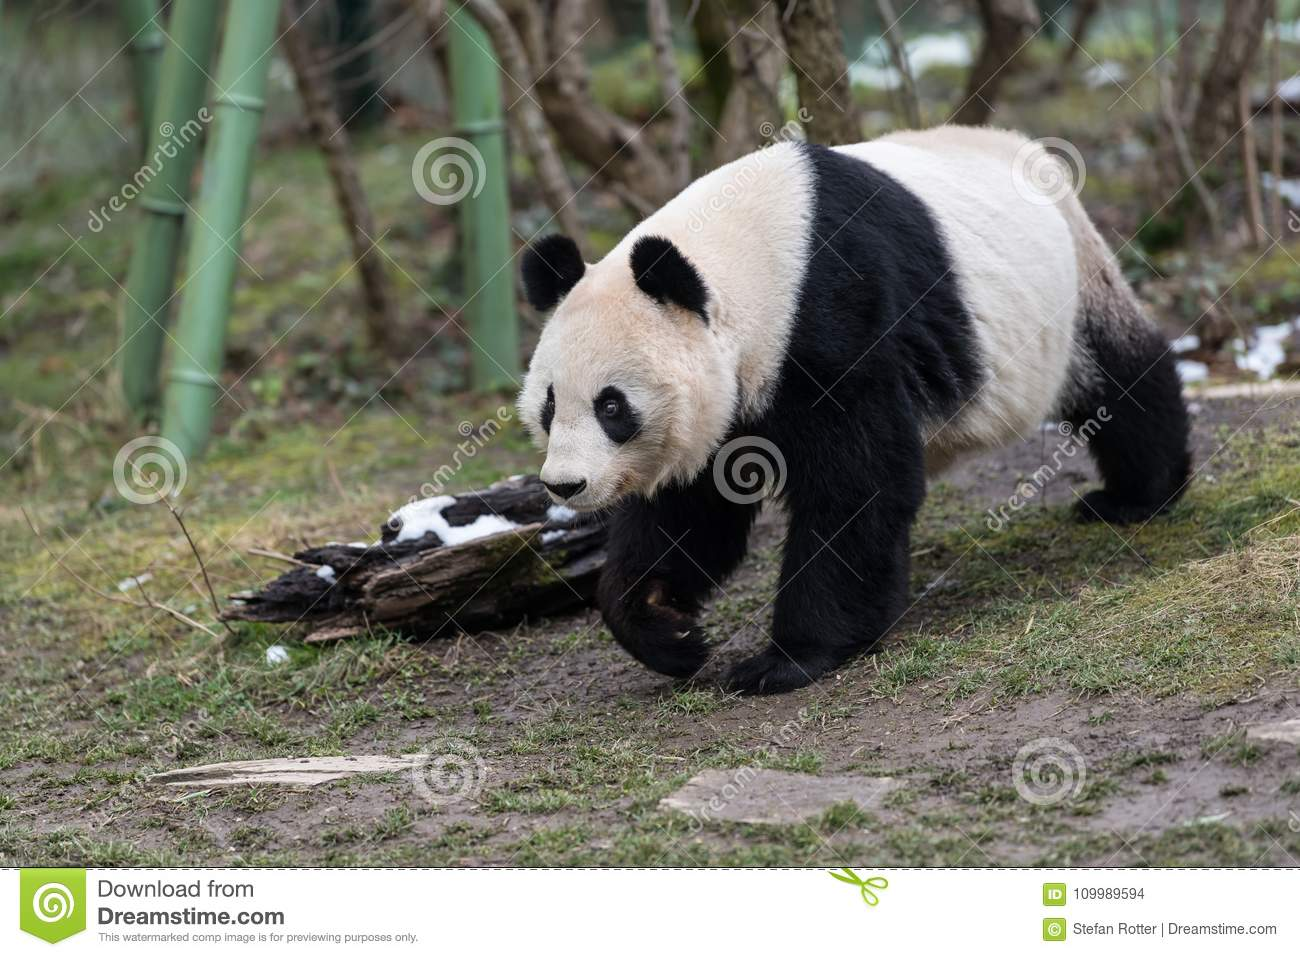 A female giant panda walking in a zoo